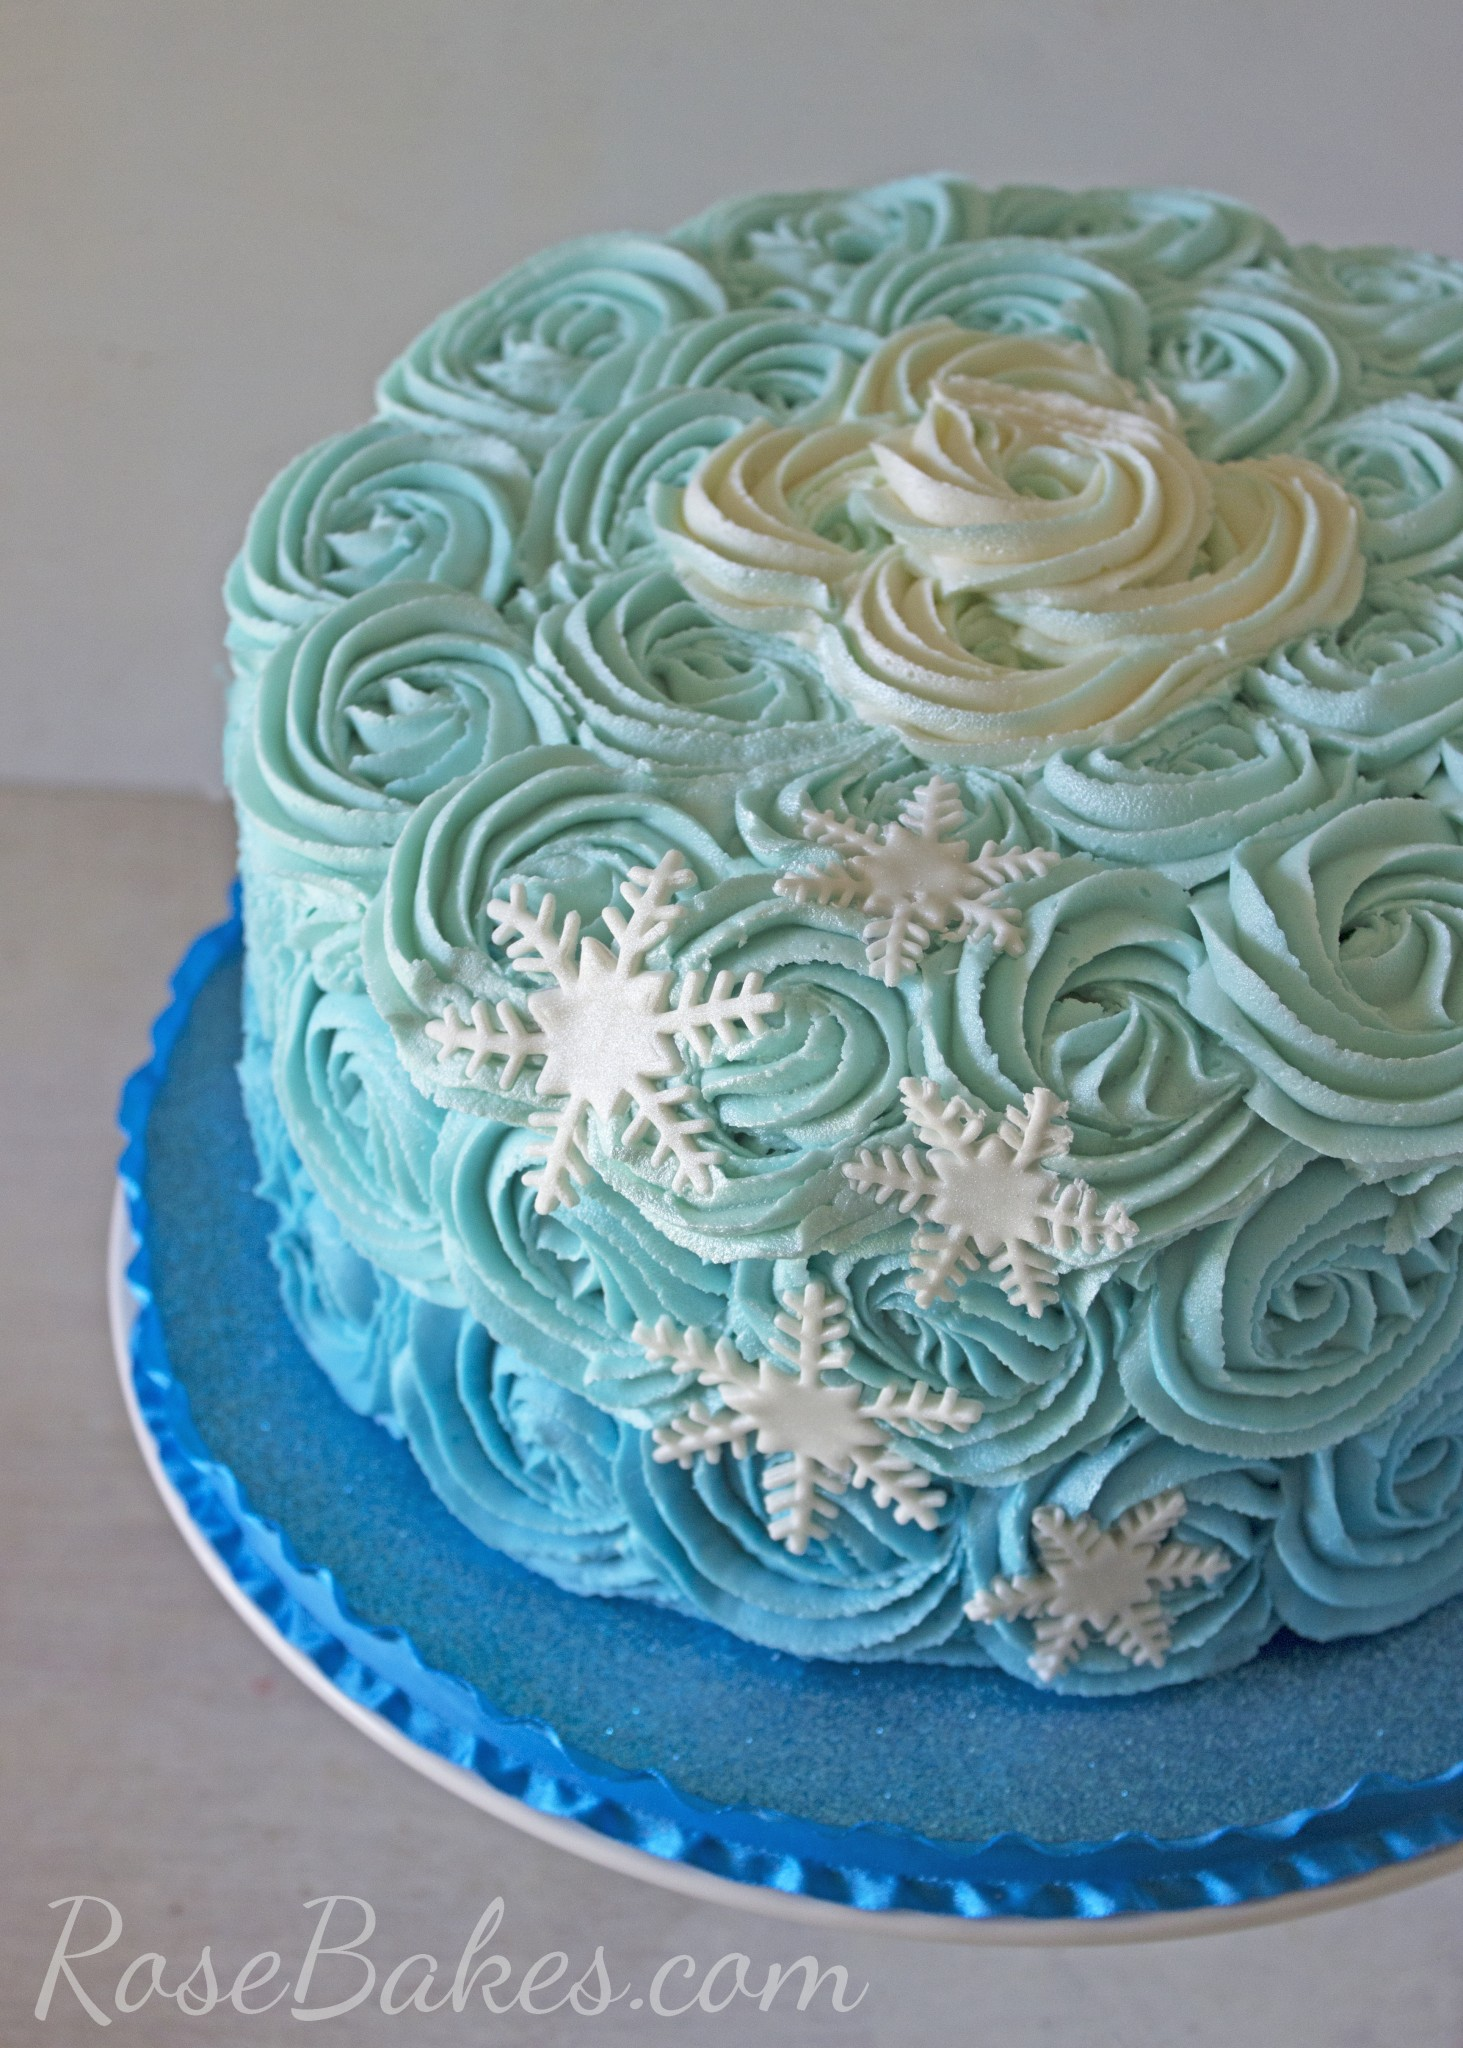 Ombre Buttercream Roses Frozen Cake amp Cupcakes Cookies